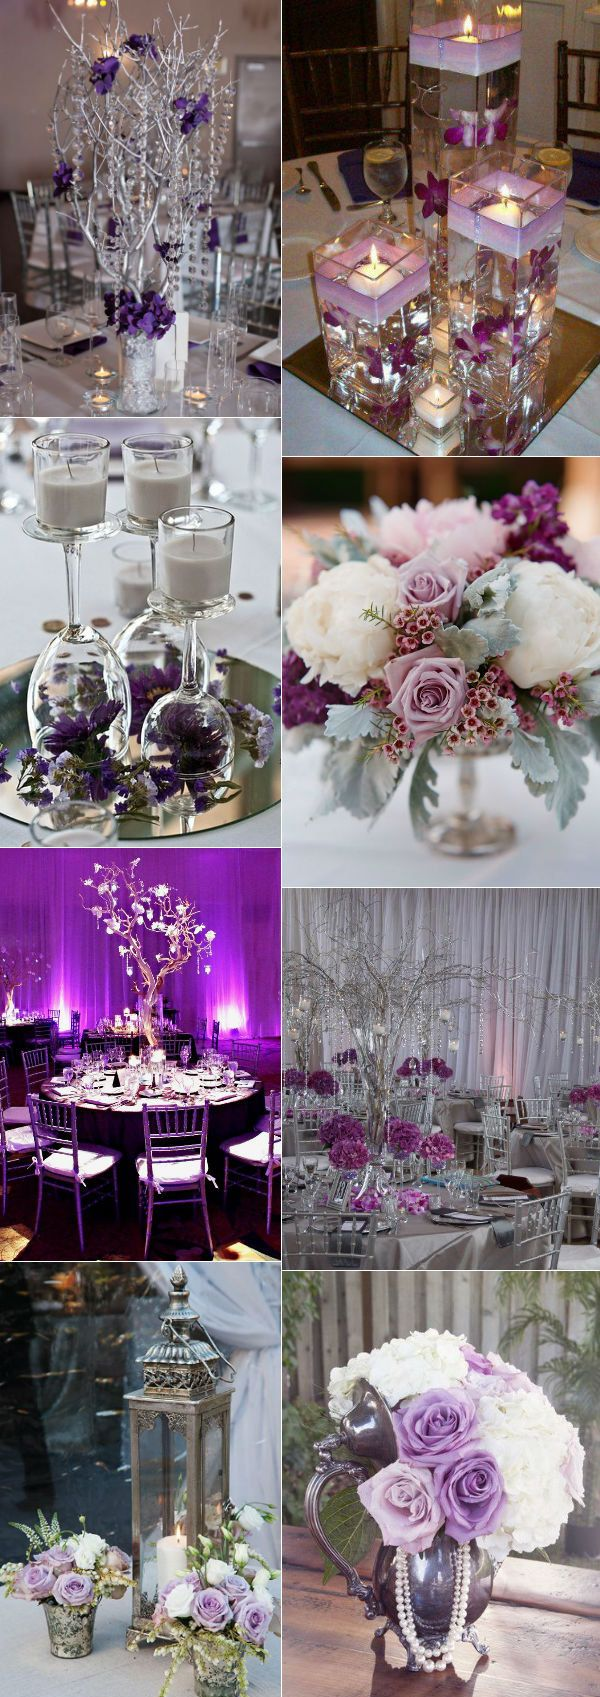 Stunning Wedding Color Ideas In Shades Of Purple And Silver | Silver ...